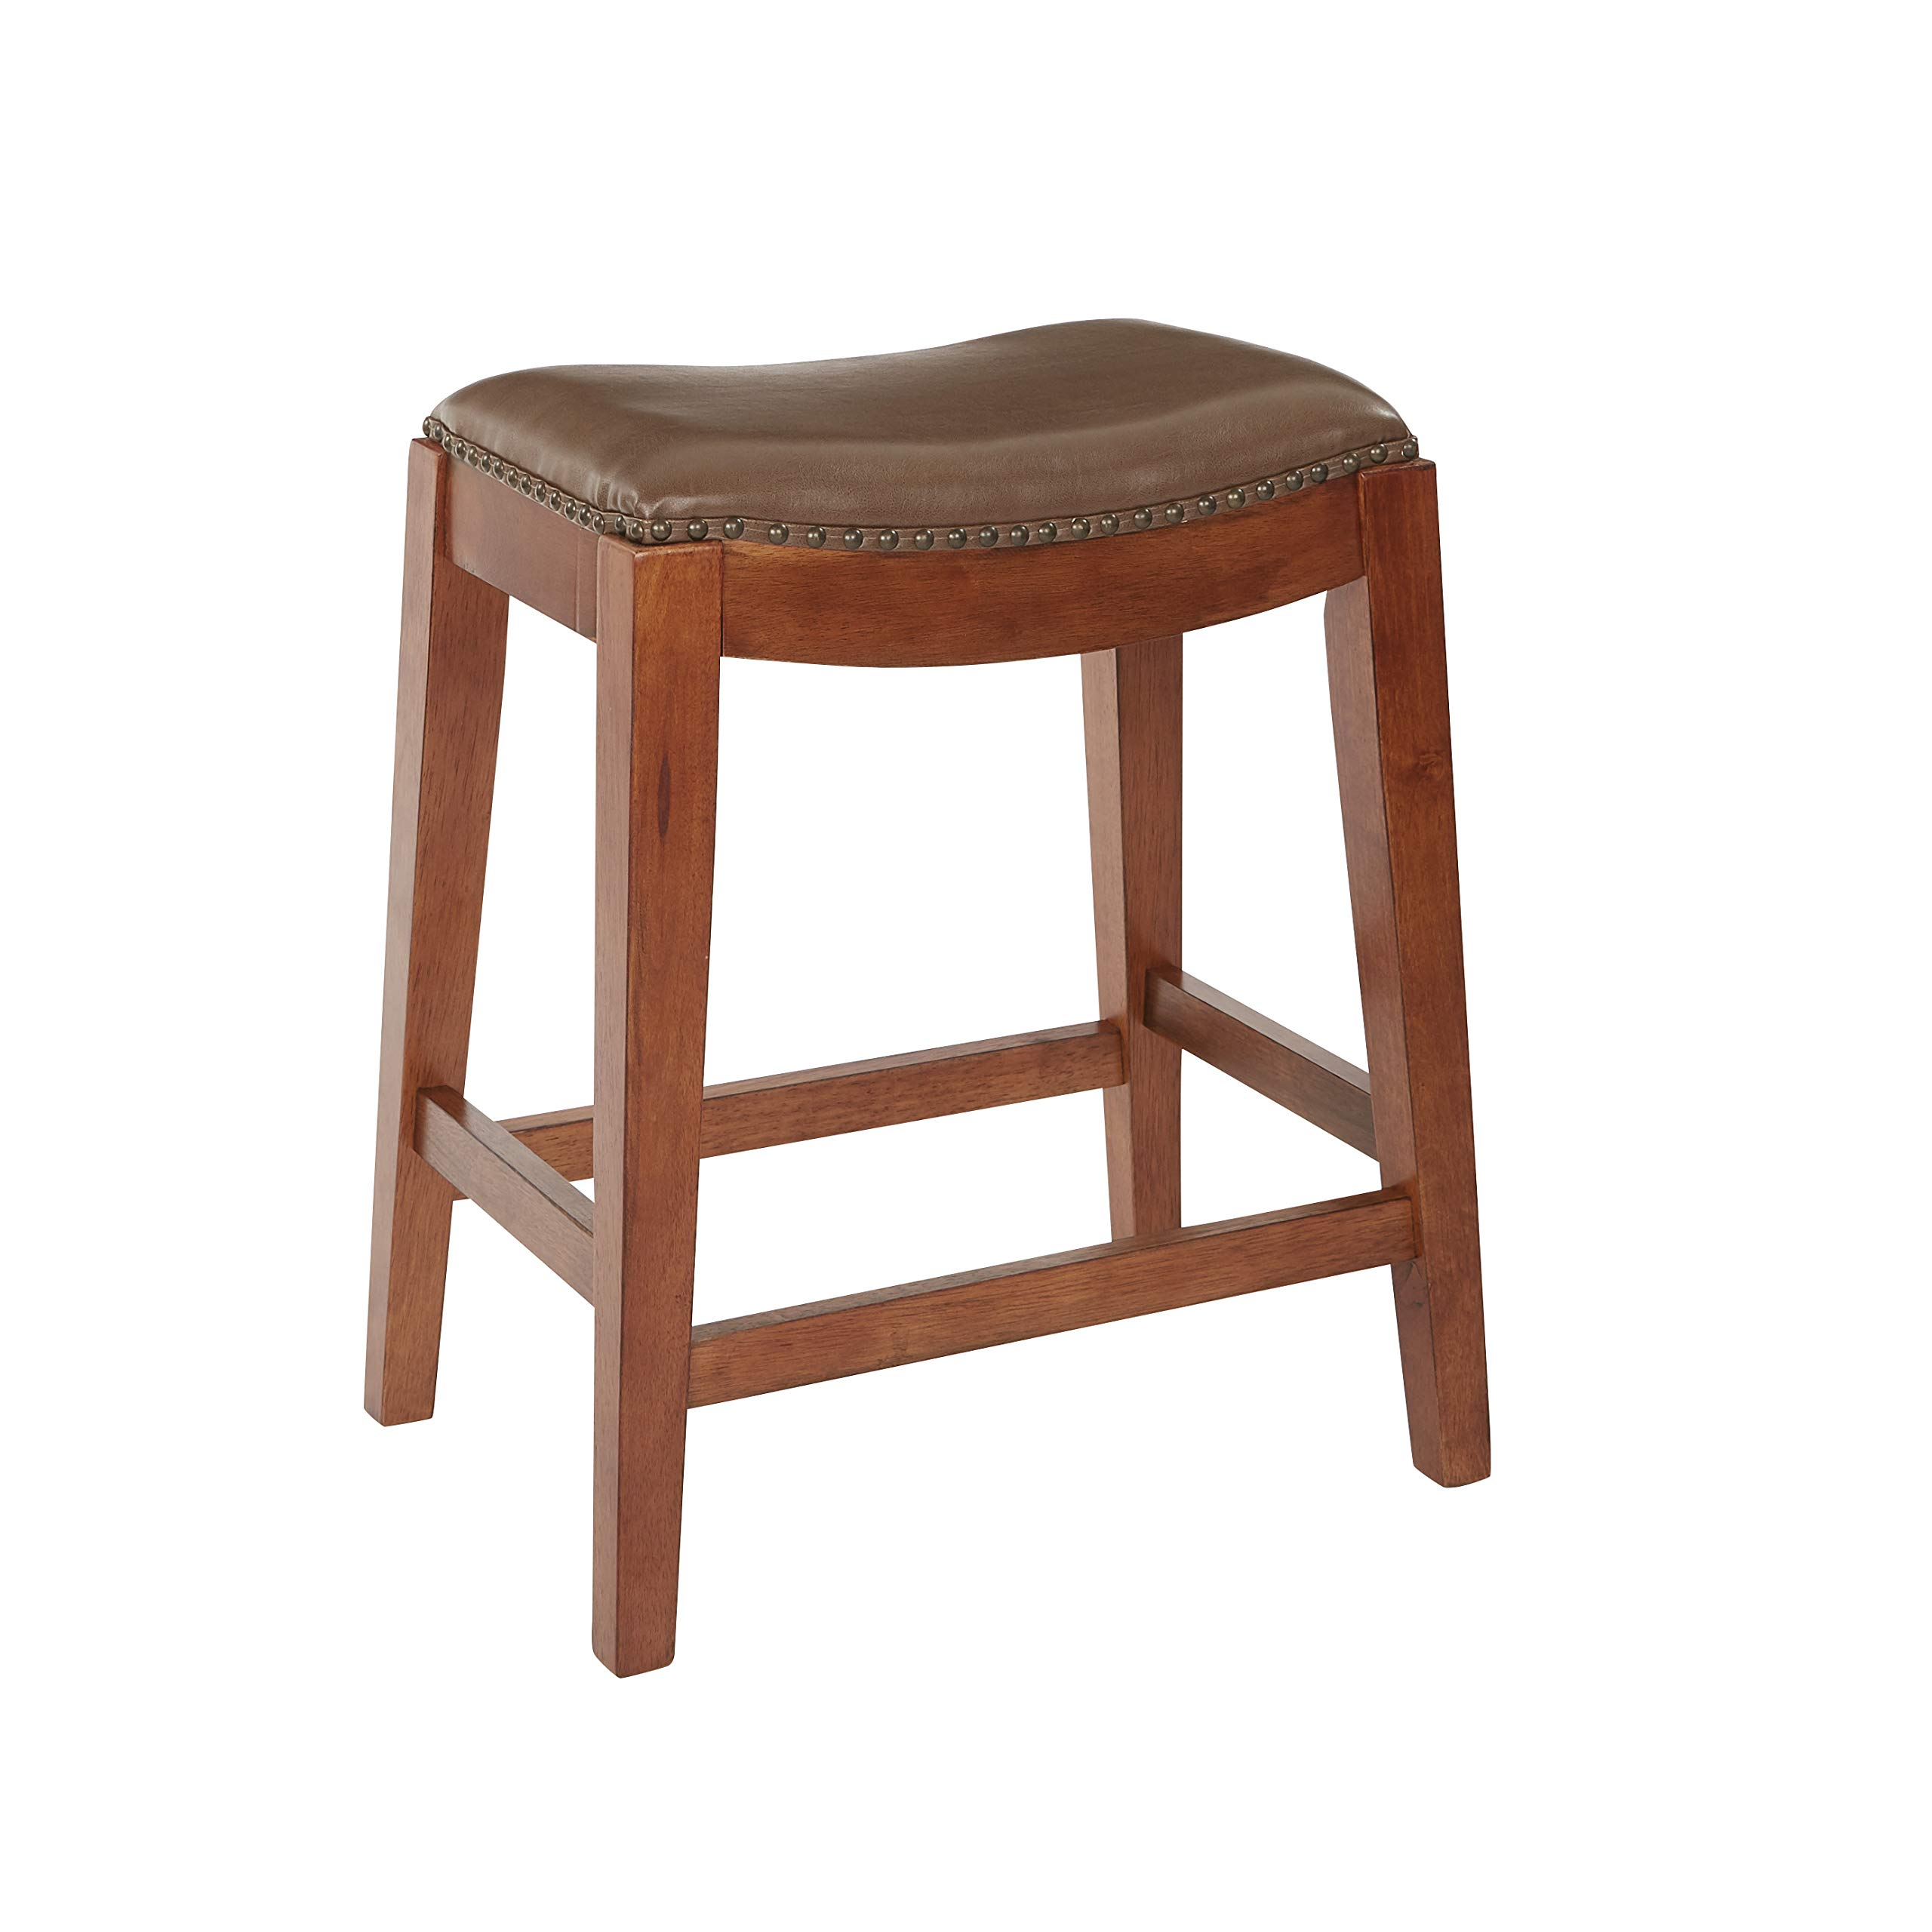 OSP Designs Metro Bonded Leather Counter-Height Saddle Stool with Nail Head Accents and Espresso Finished Legs, 24-Inch, Molasses